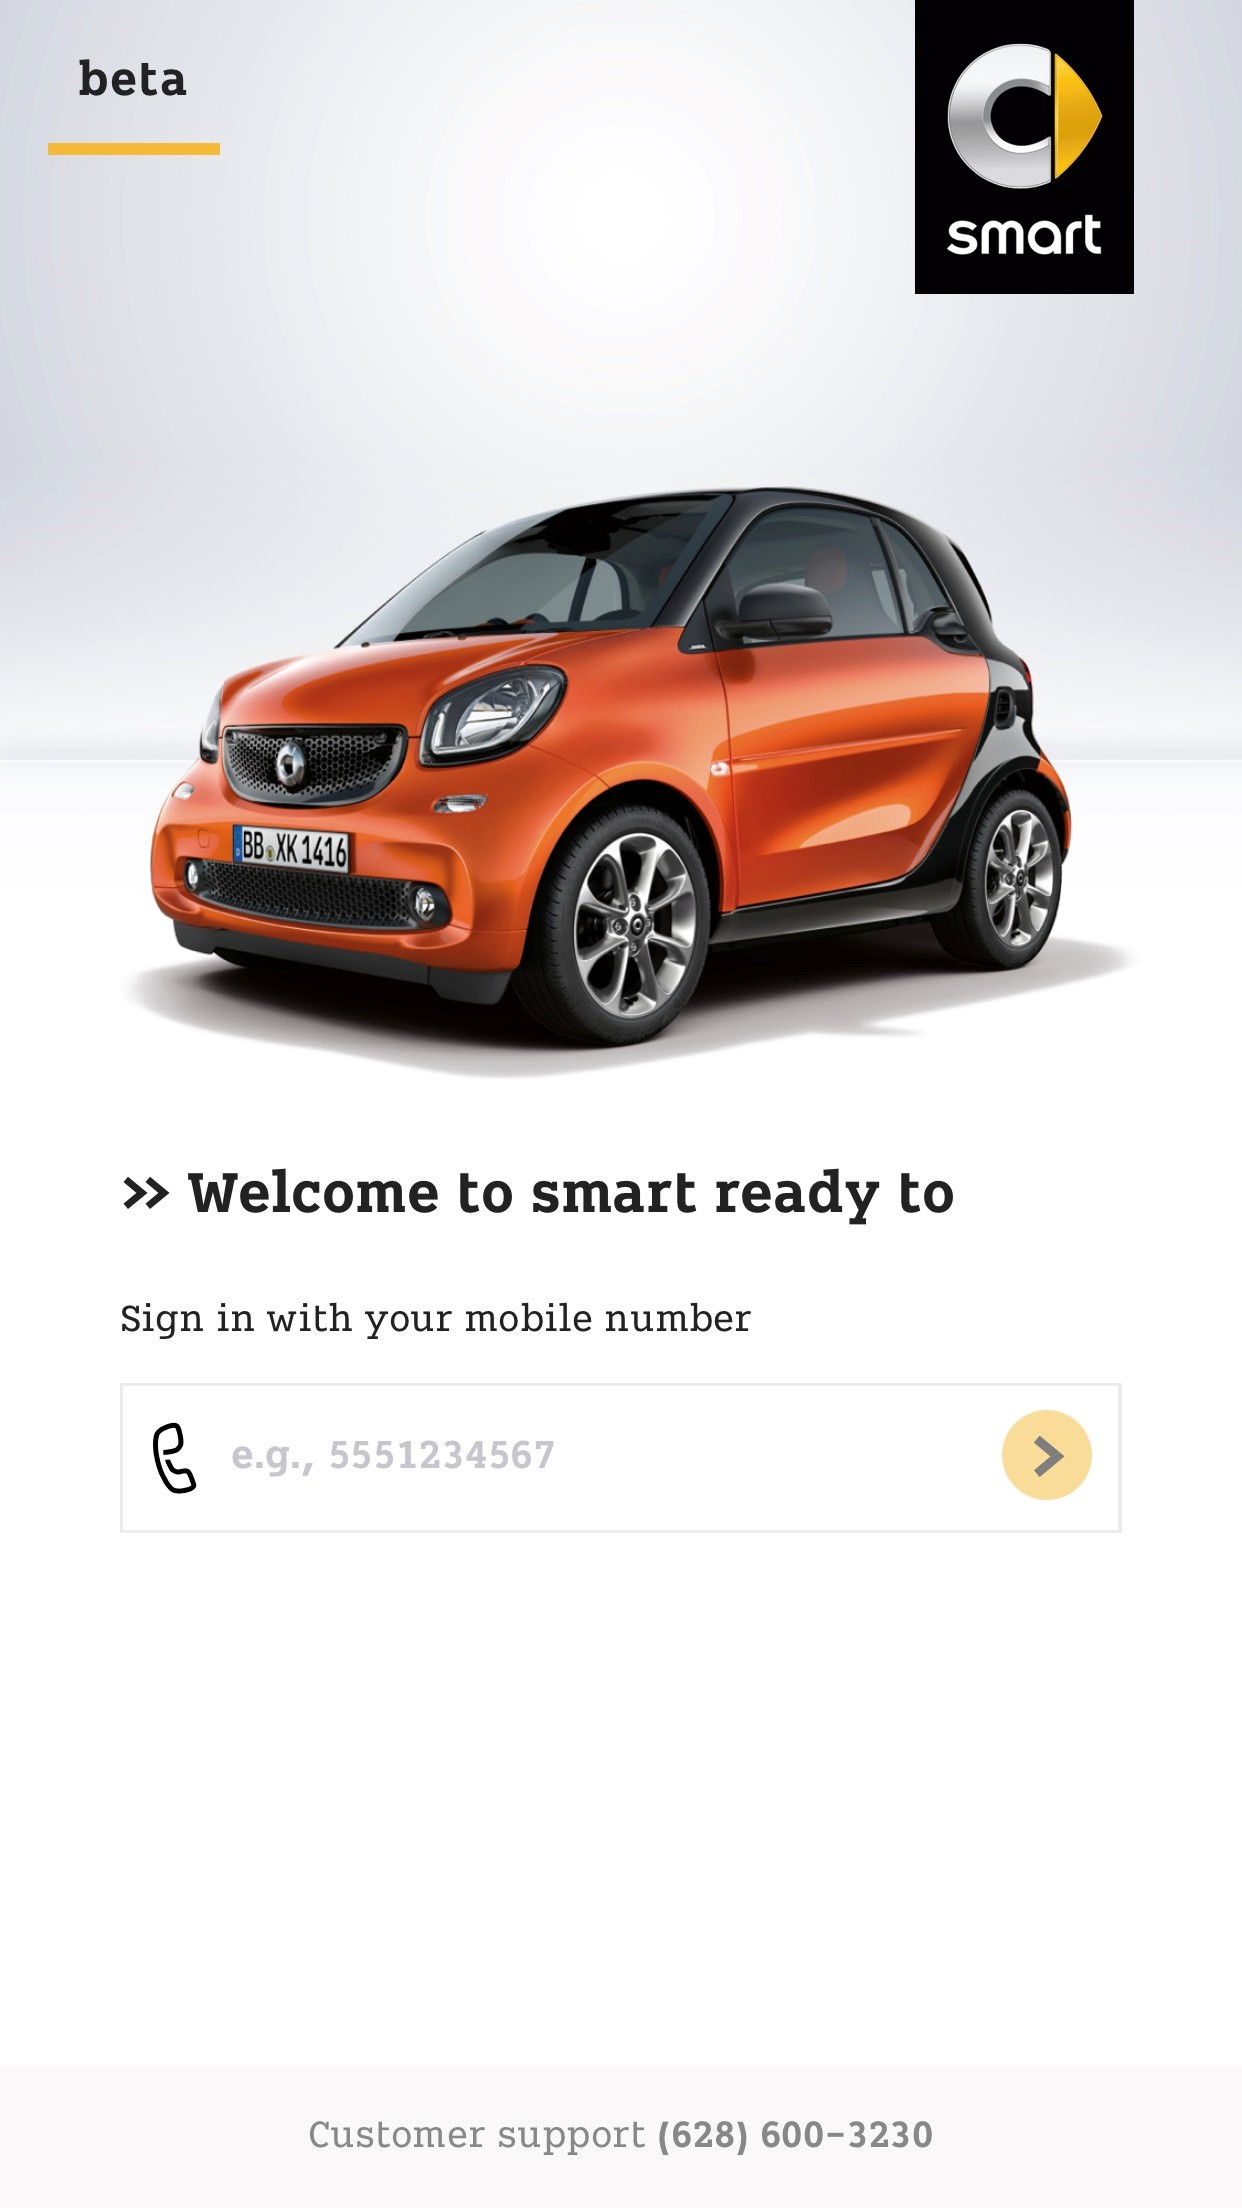 4. open smart ready to